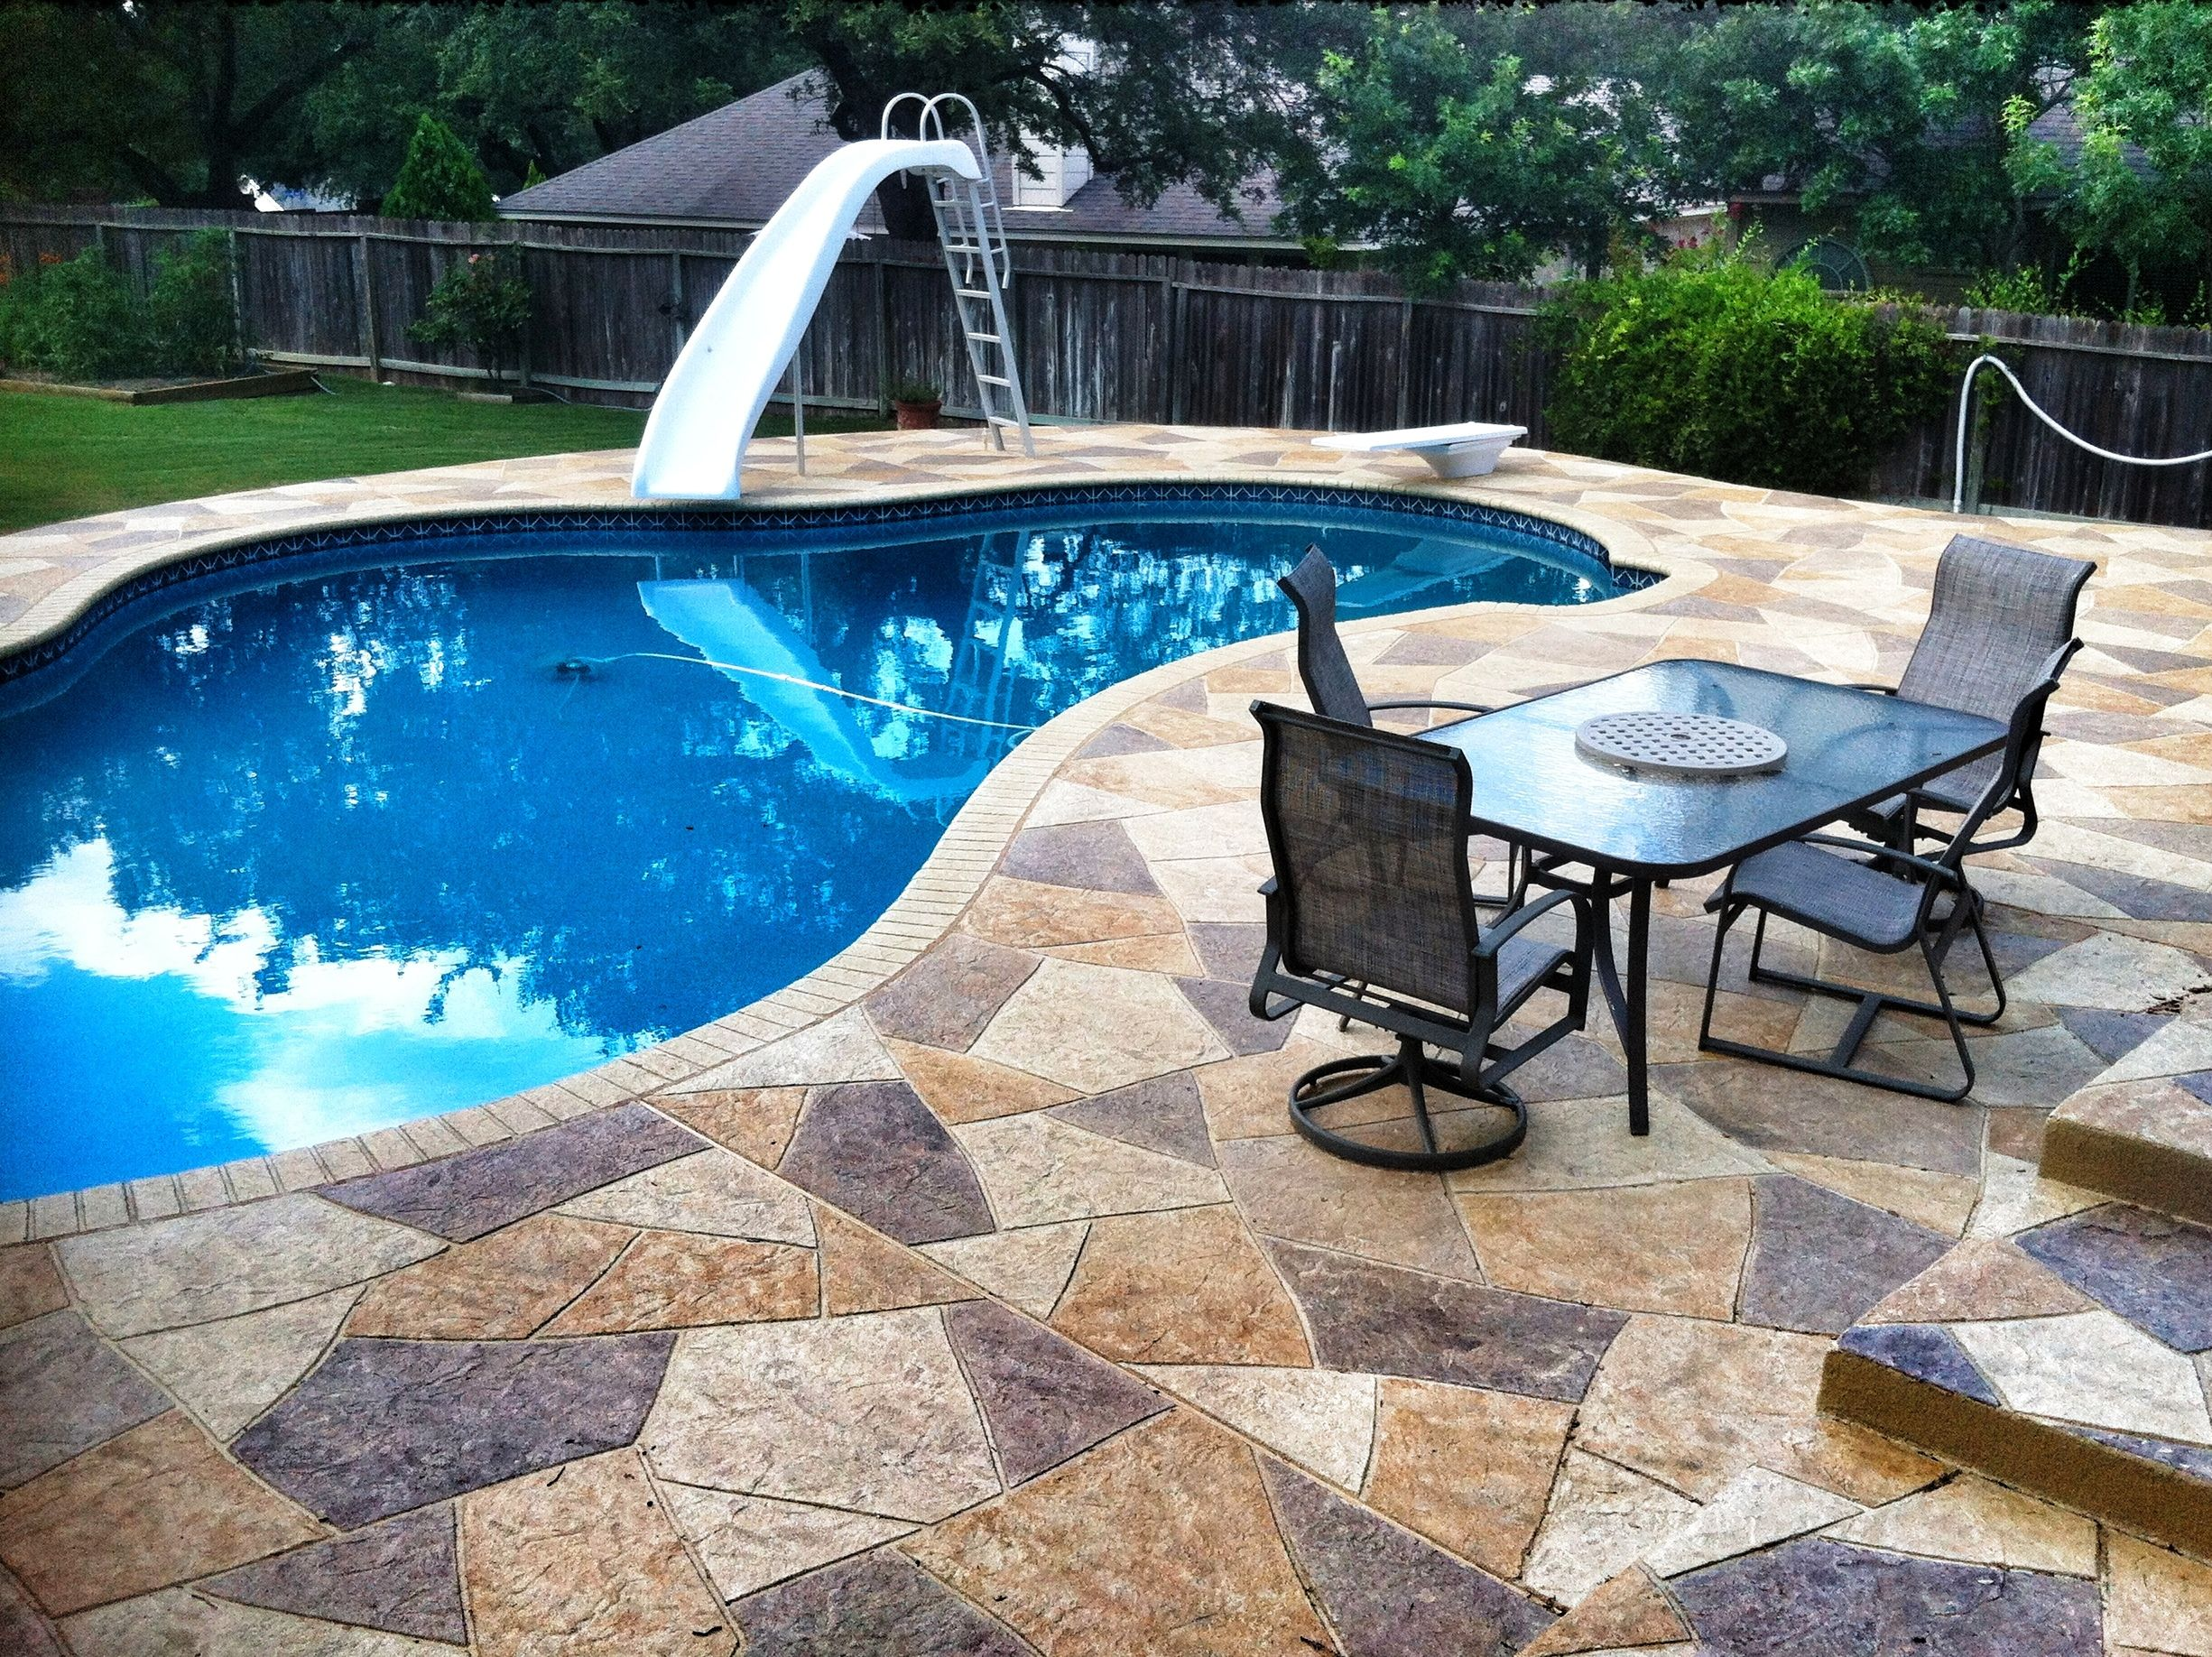 SunStamp By Sundek Decorative Concrete Specialists Is Such A Great Way To  Finish Out A Pool